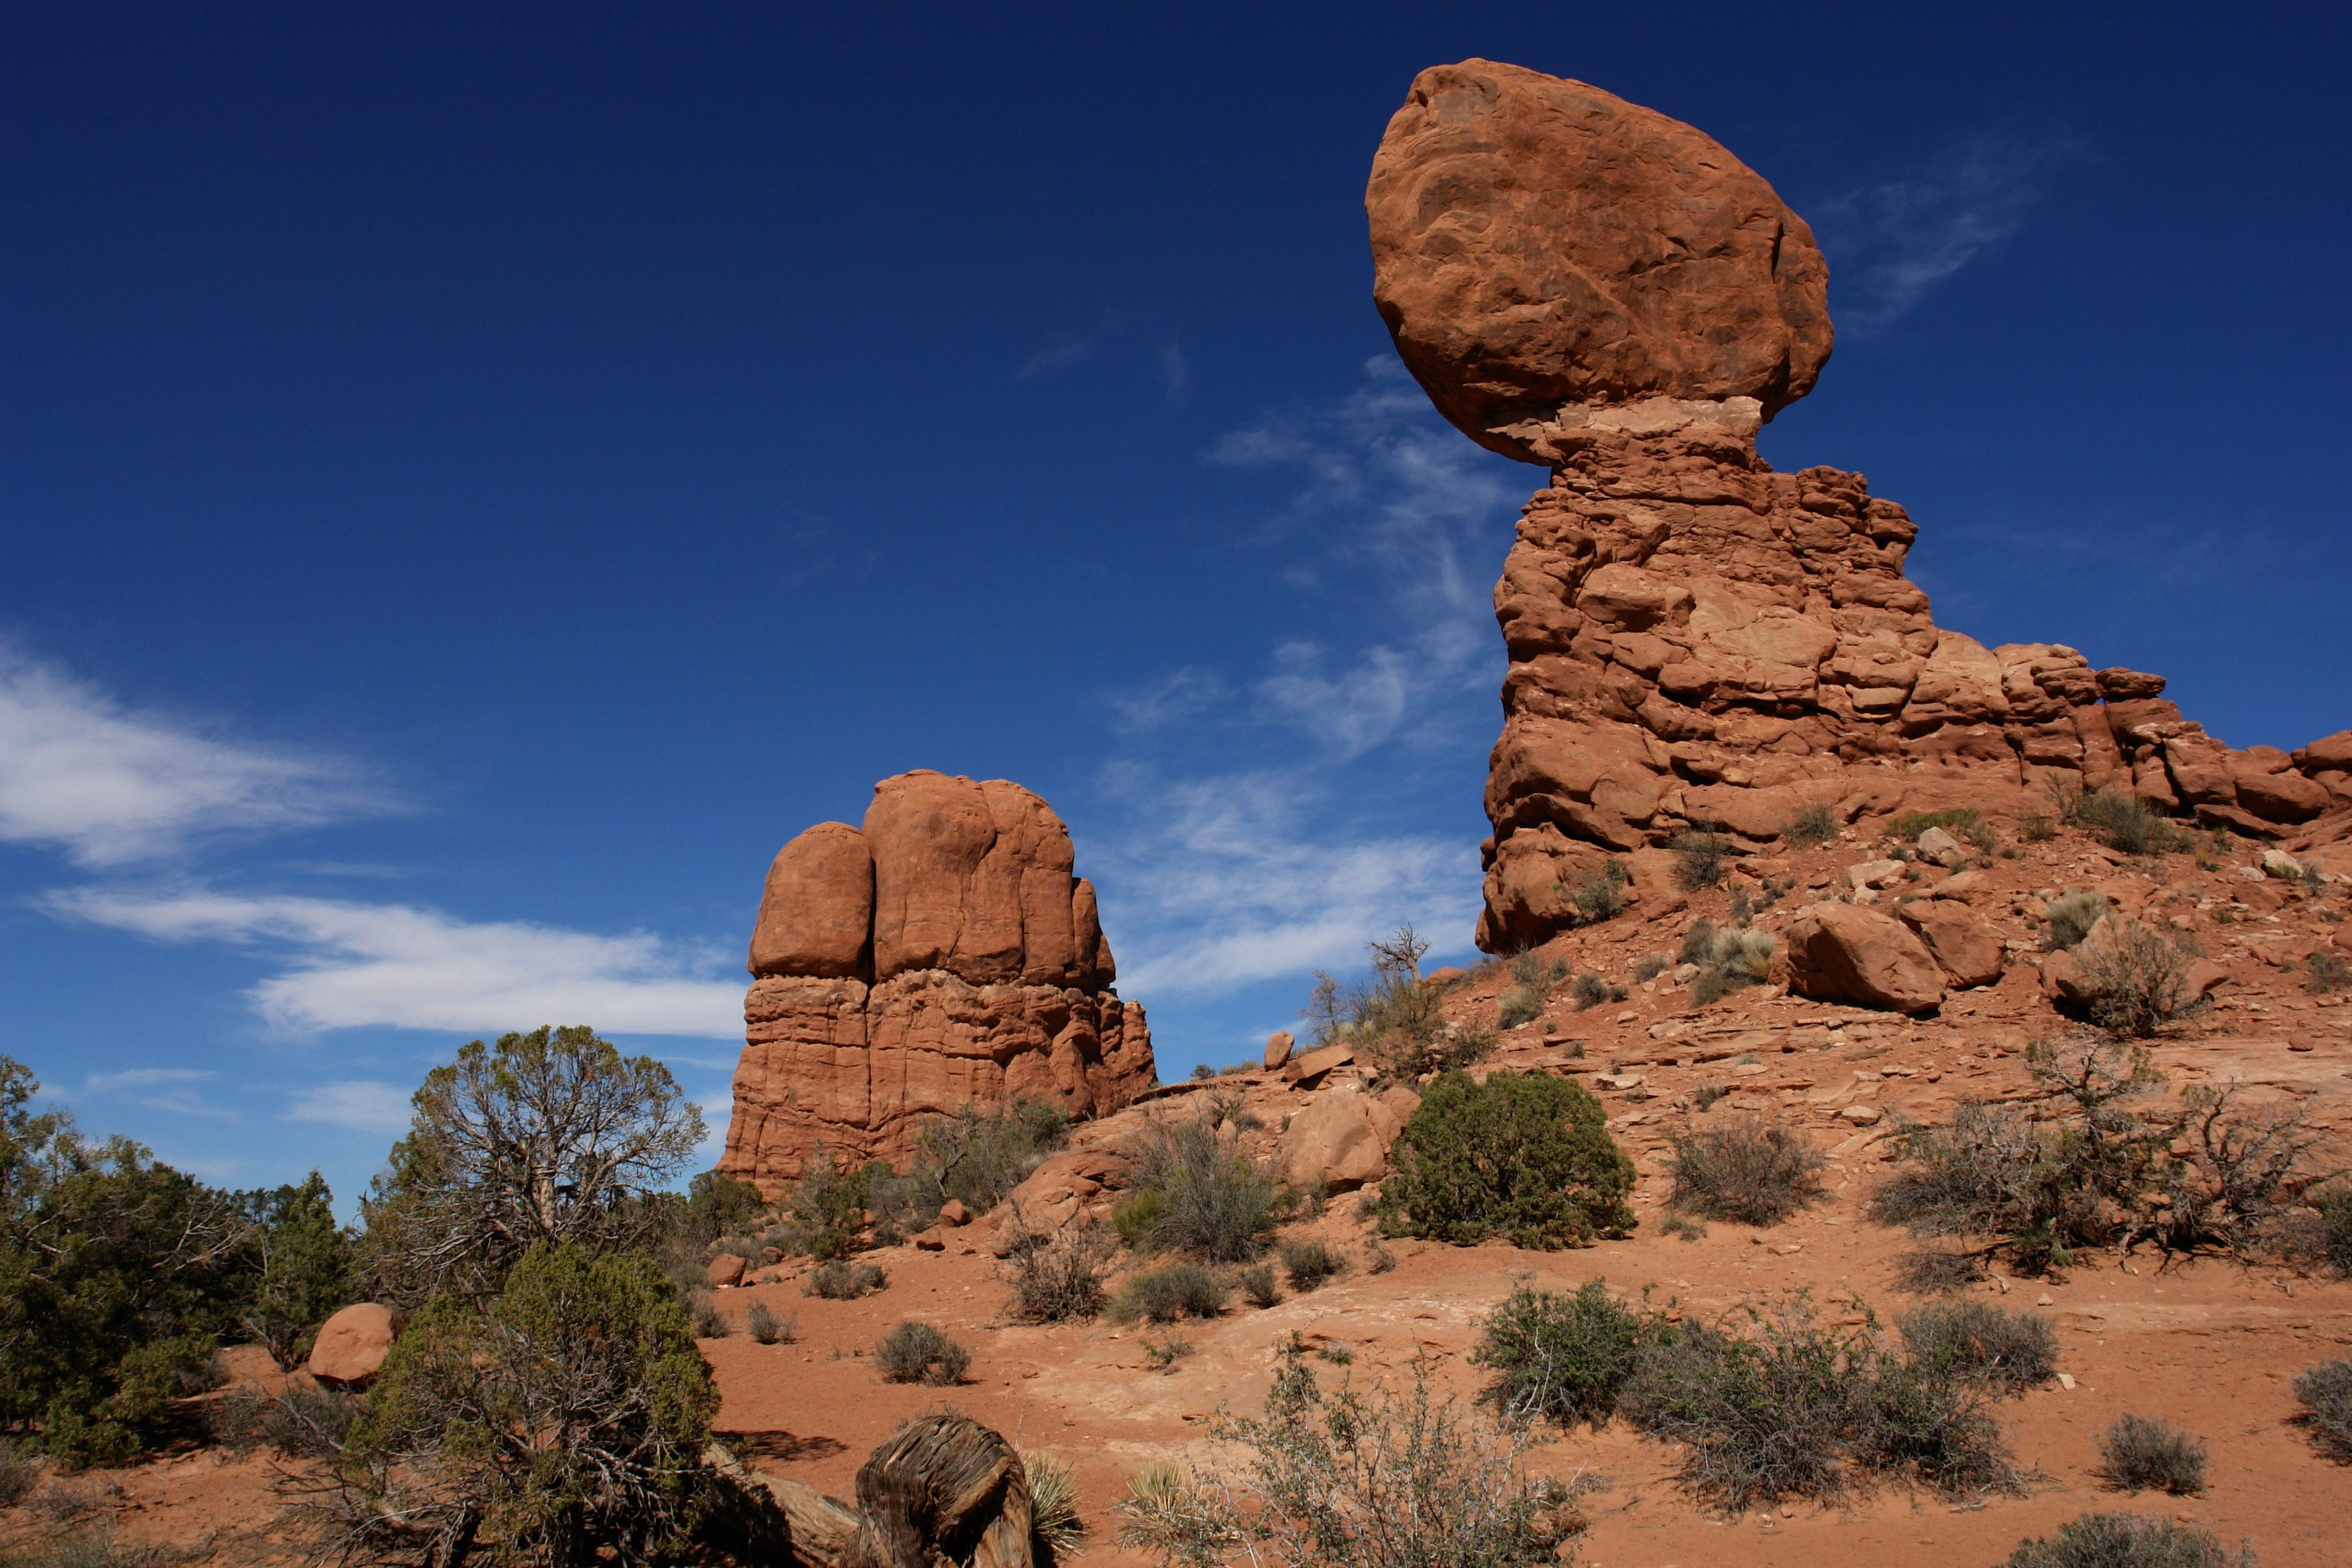 utah map usa with File Balanced Rock  Arches National Park  Utah  3458772956 on Antelope Canyon In Arizona additionally Mono Lake Usa besides Colorado in addition Maine Location On The Us Map further Grand Canyon Usa.